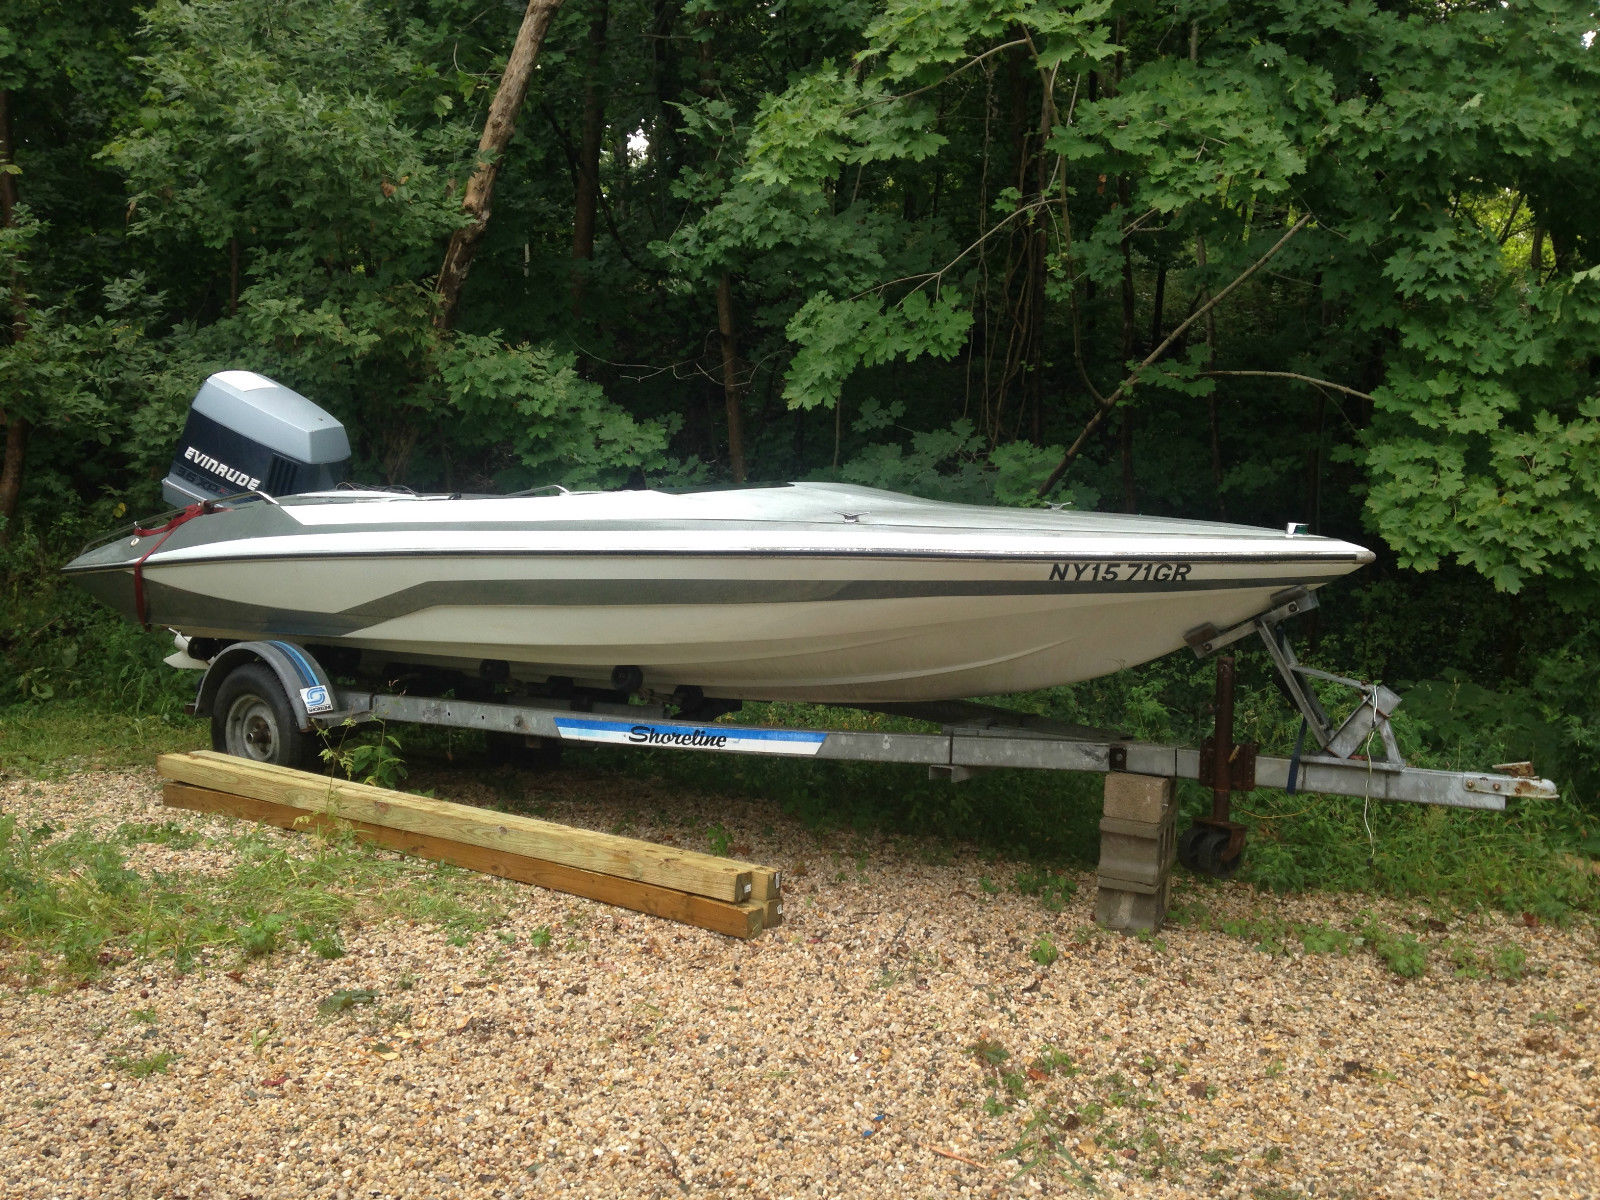 Glastron Cvx 20 For Sale >> Glastron Cvx20 1984 for sale for $3,900 - Boats-from-USA.com